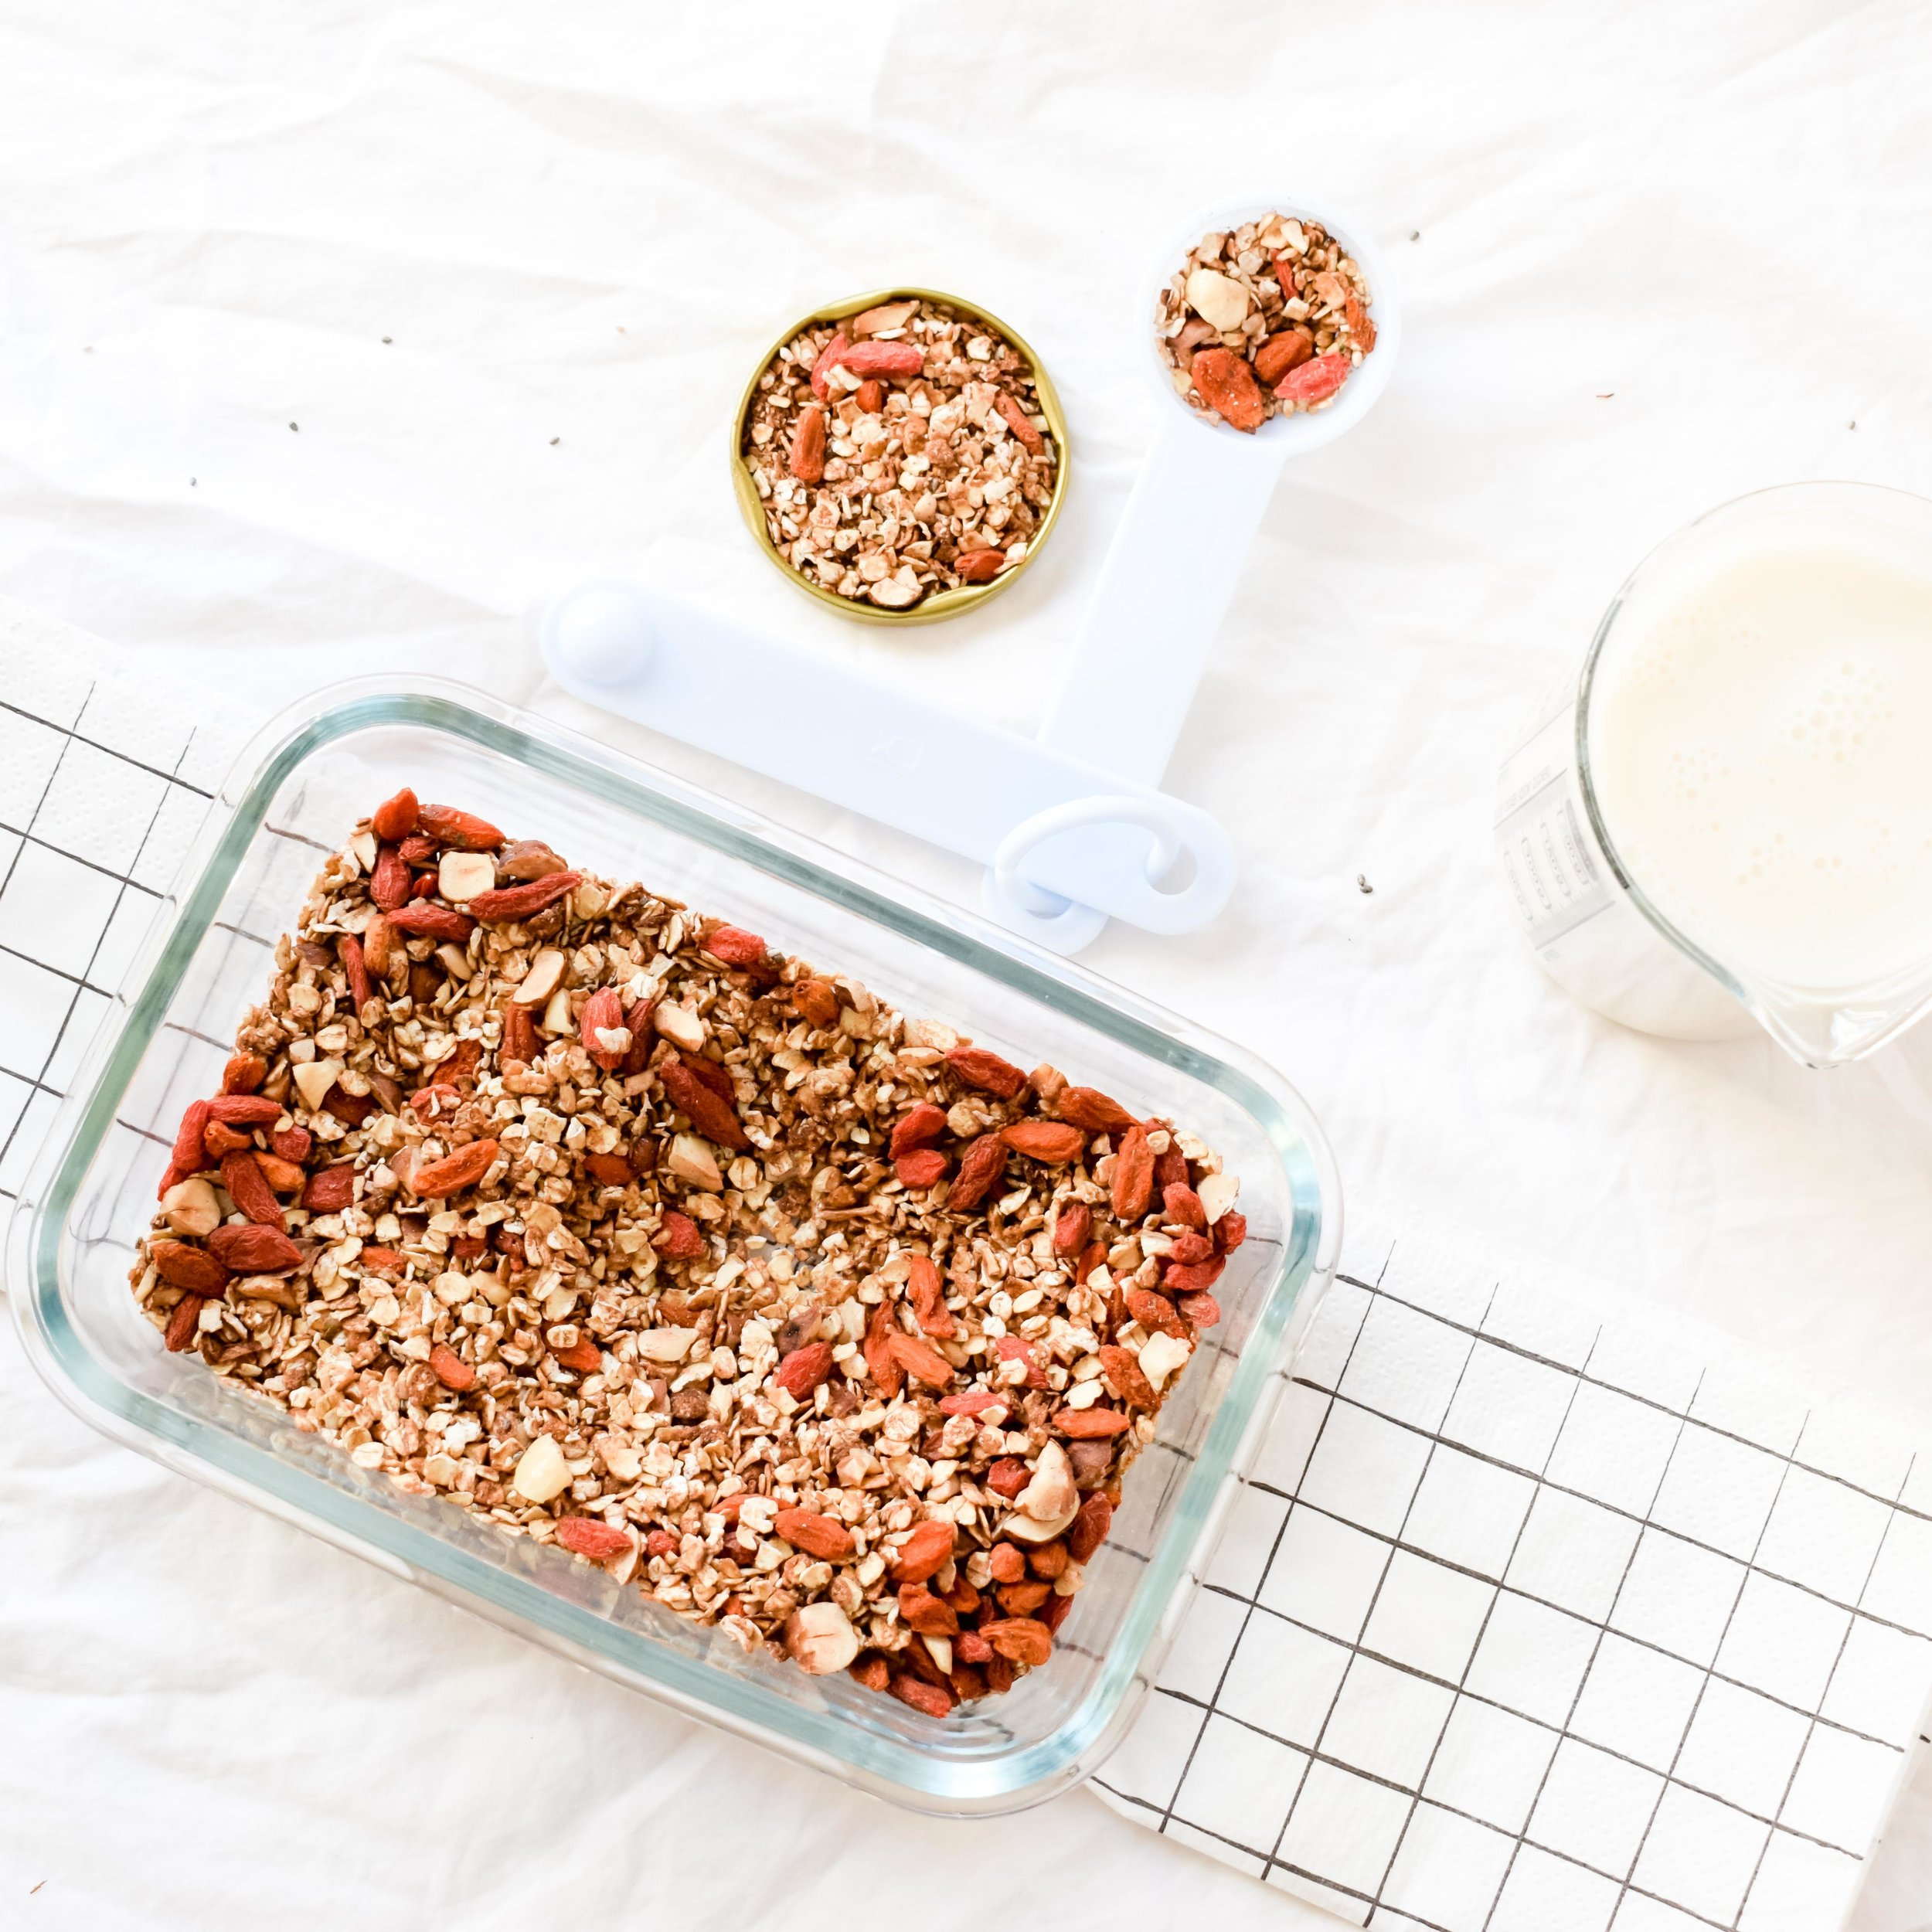 Make your own: find a designated day of the month to do some batch cooking or baking: I like to make my own granola, energy balls or plant-based mylk. -